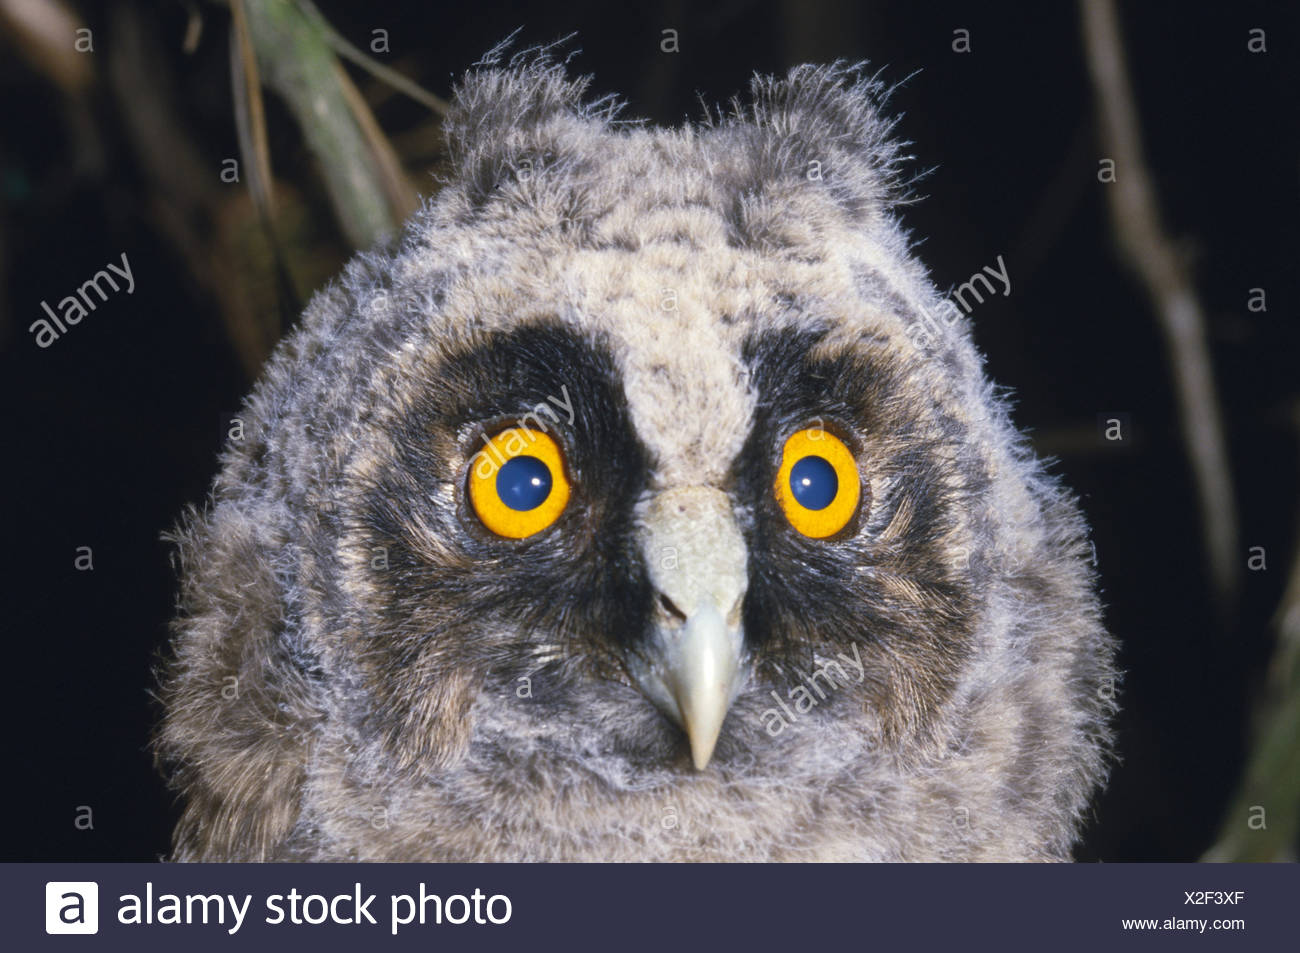 Waldohreule, Lond-eared Owl, asio otus Stock Photo